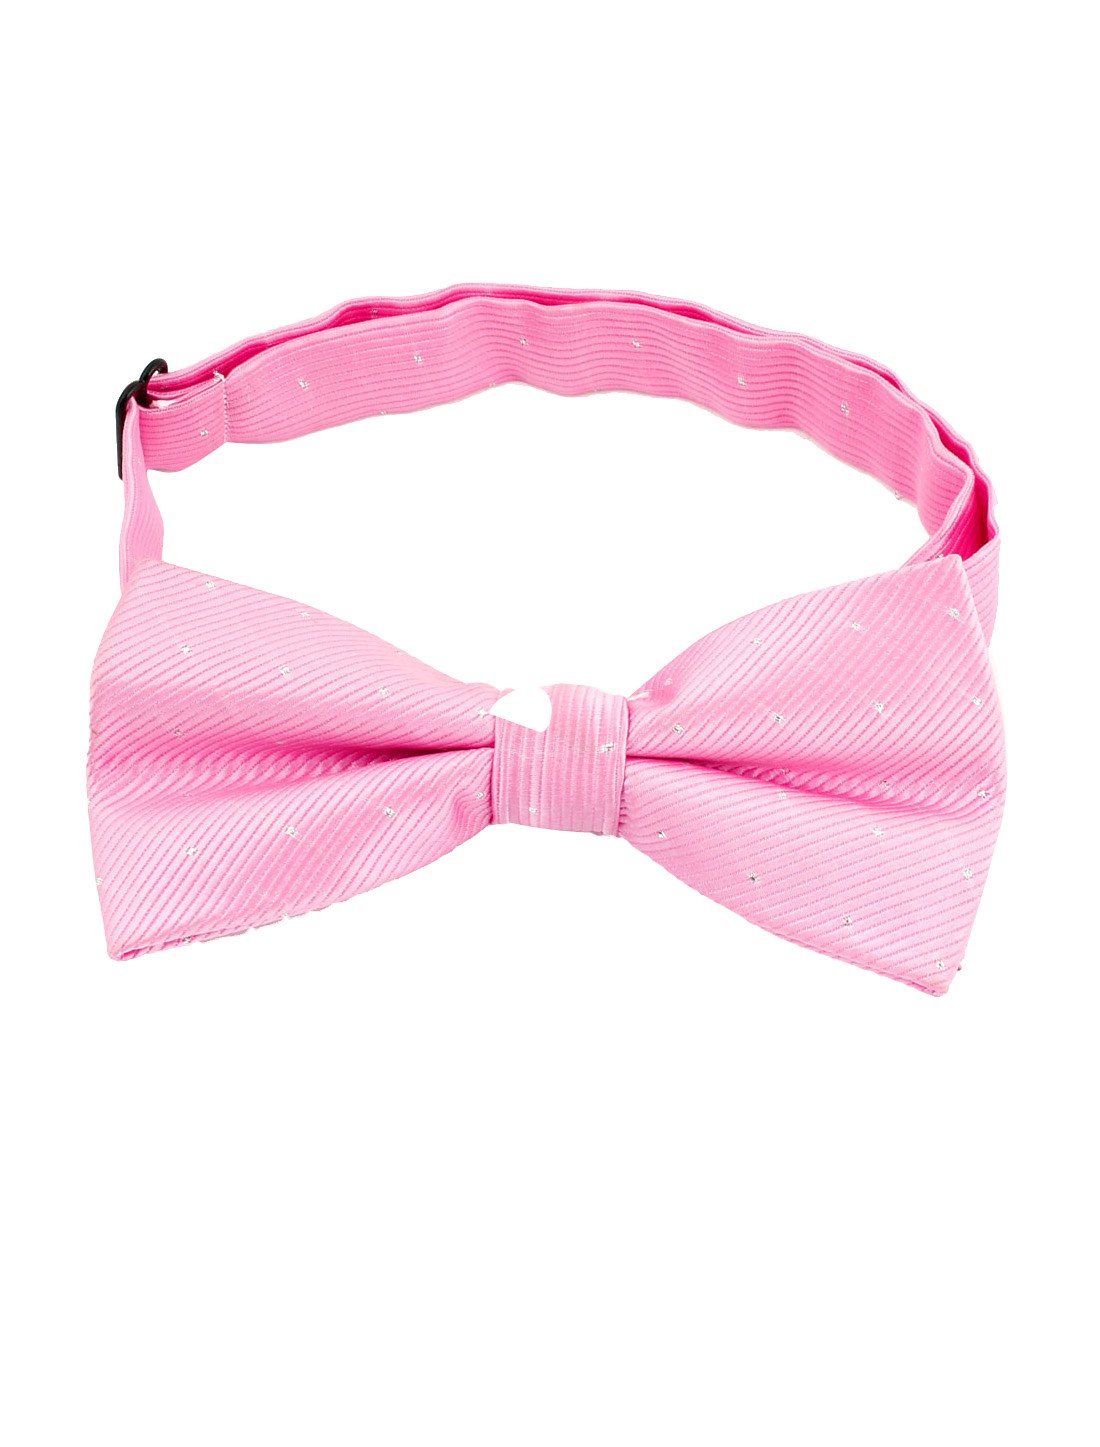 Men Party Dots Pattern Adjustable Strap Bow Tie Bowtie Pink